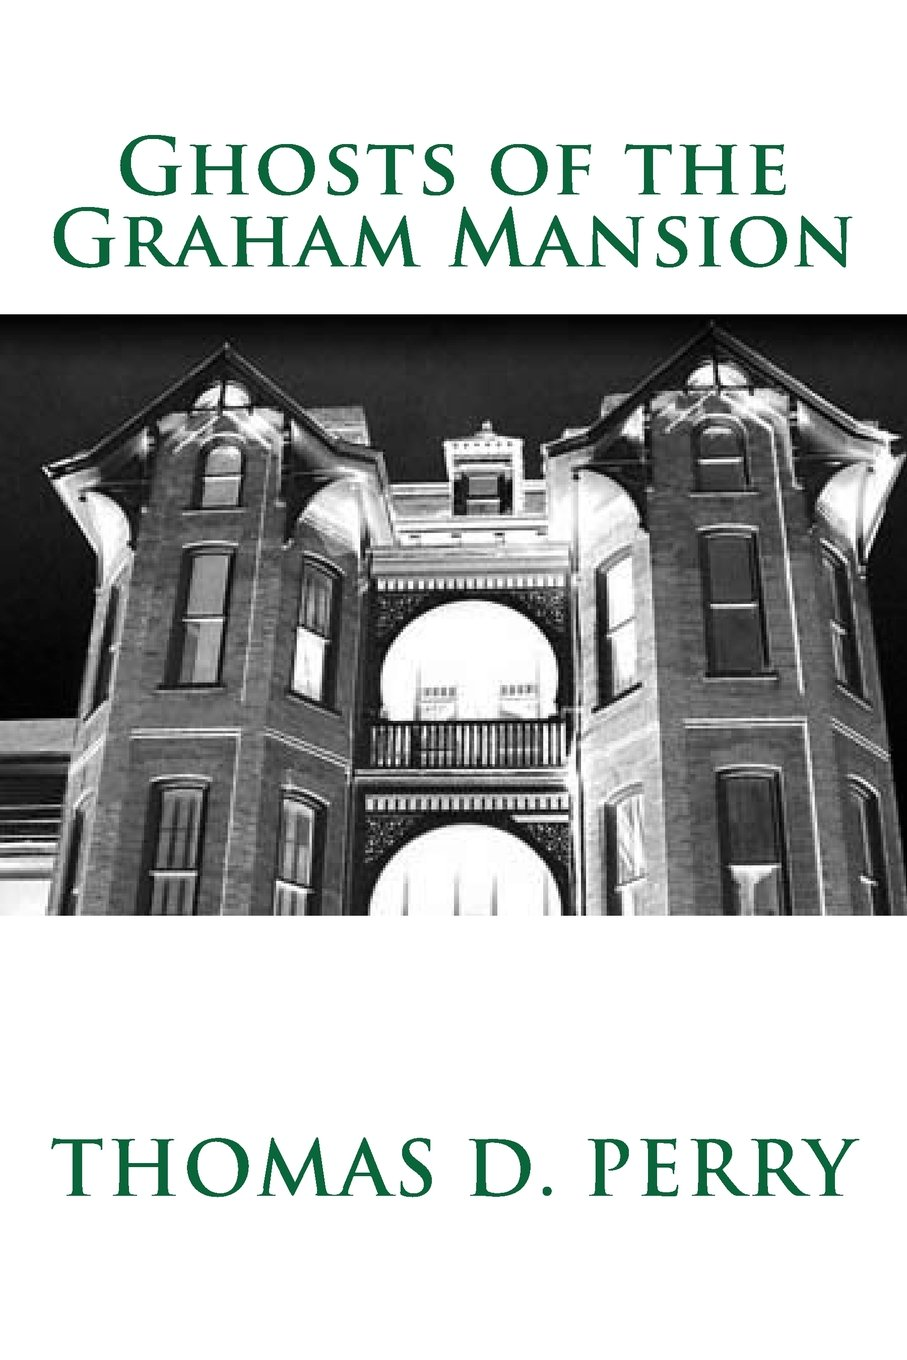 Ghosts of the Graham Mansion: Paranormal Tales From Wythe County Virginia's Haunted PDF